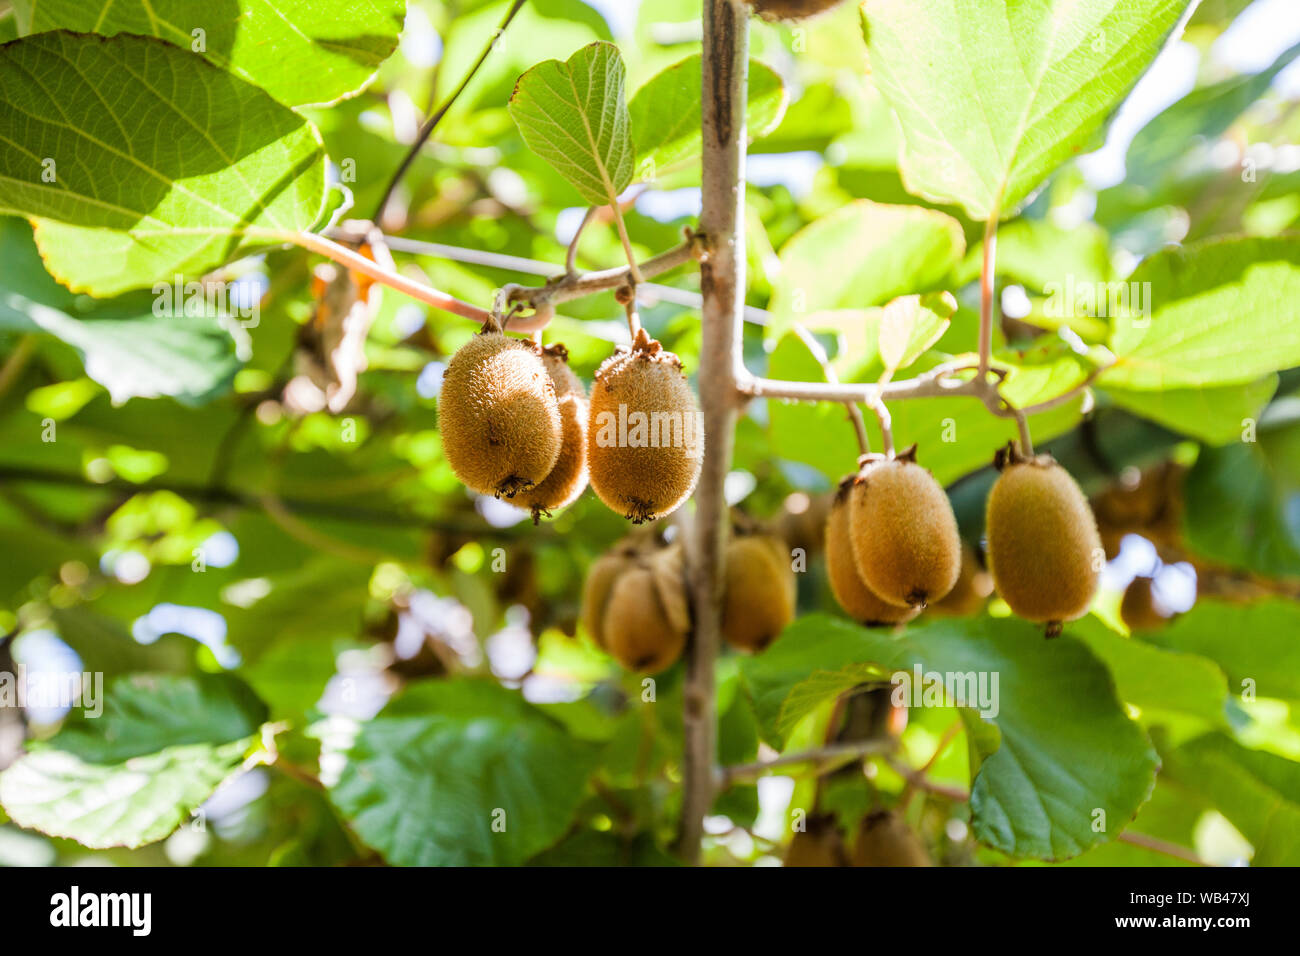 Kiwi Fruits On The Branches At Summer Season On Day Light Low Angle View Stock Photo Alamy